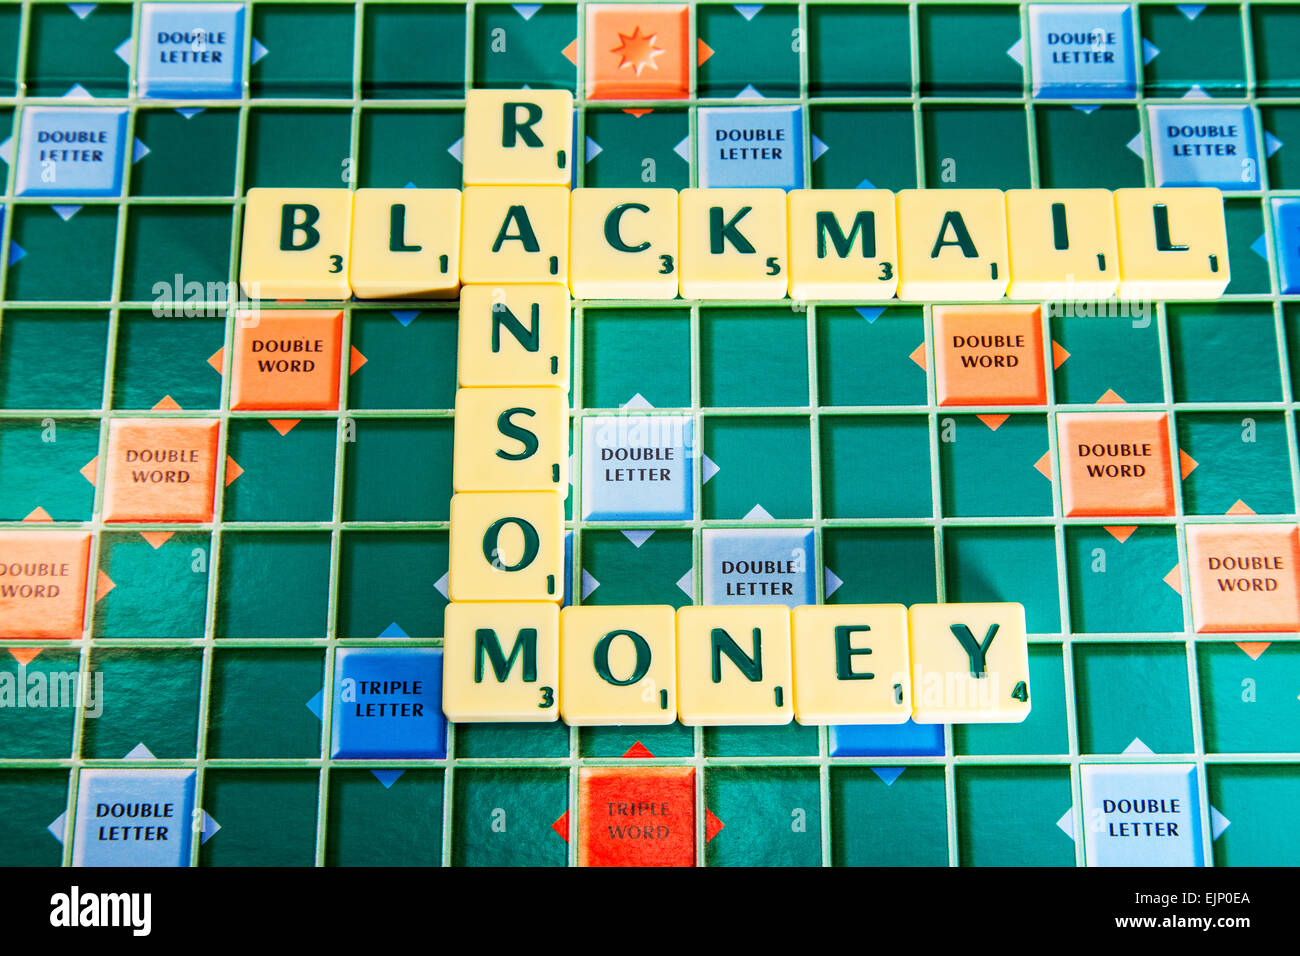 blackmail ransom money extortion fraud scare criminal tactics tactic words using scrabble tiles to illustrate spelling - Stock Image